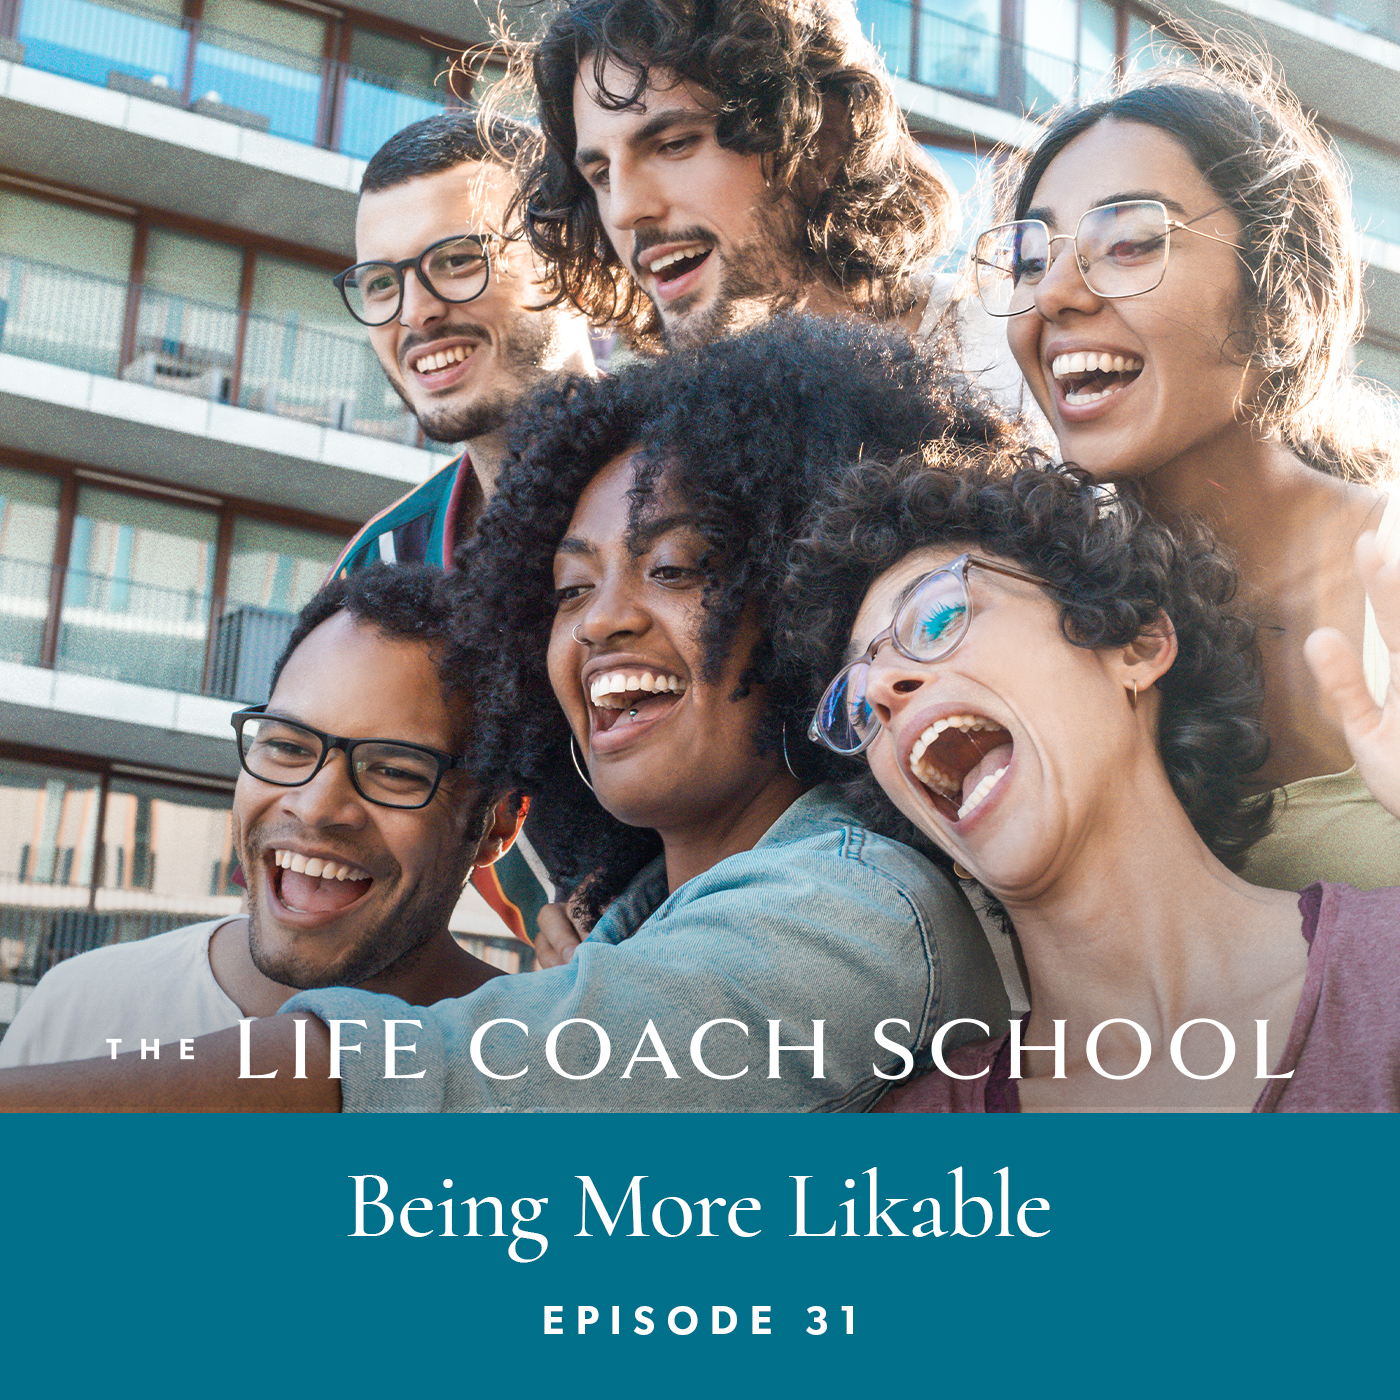 The Life Coach School Podcast   Episode 31   Being More Likable